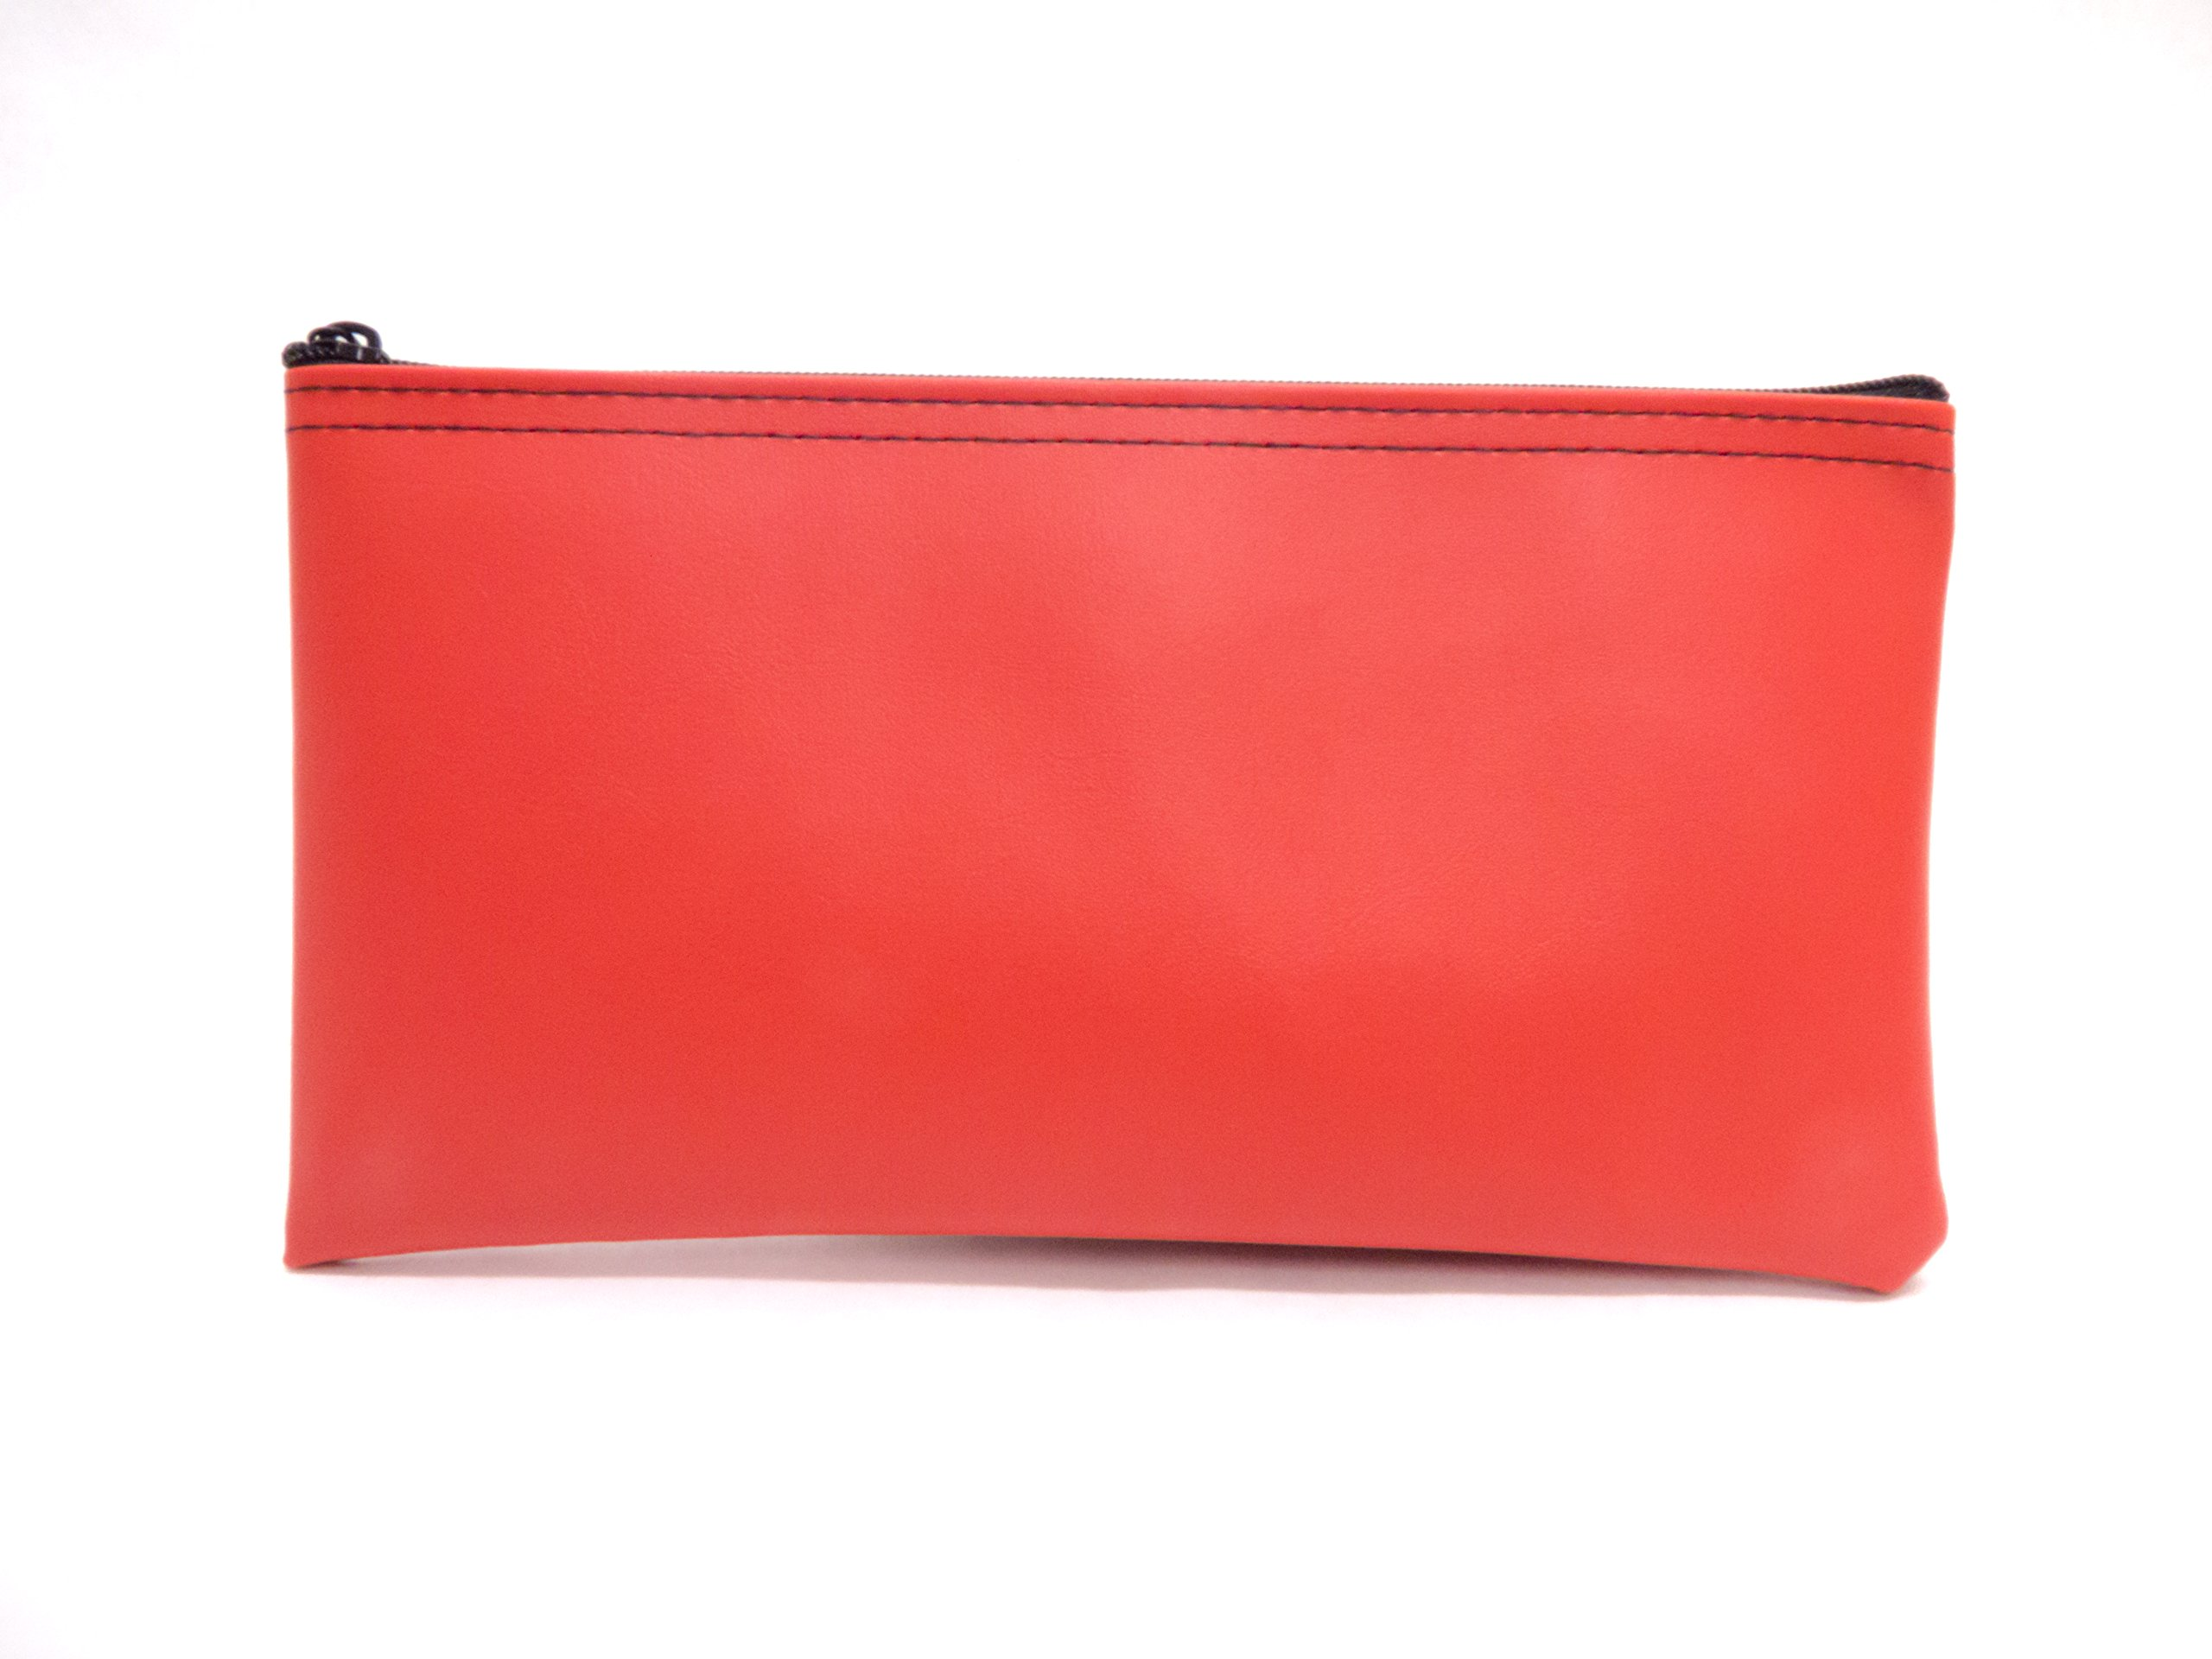 Zipper Bank Deposit Bag 5.5 X 10.5 Coin Check Money Wallet Red Pack of 10 by Carousel Checks Inc. (Image #2)